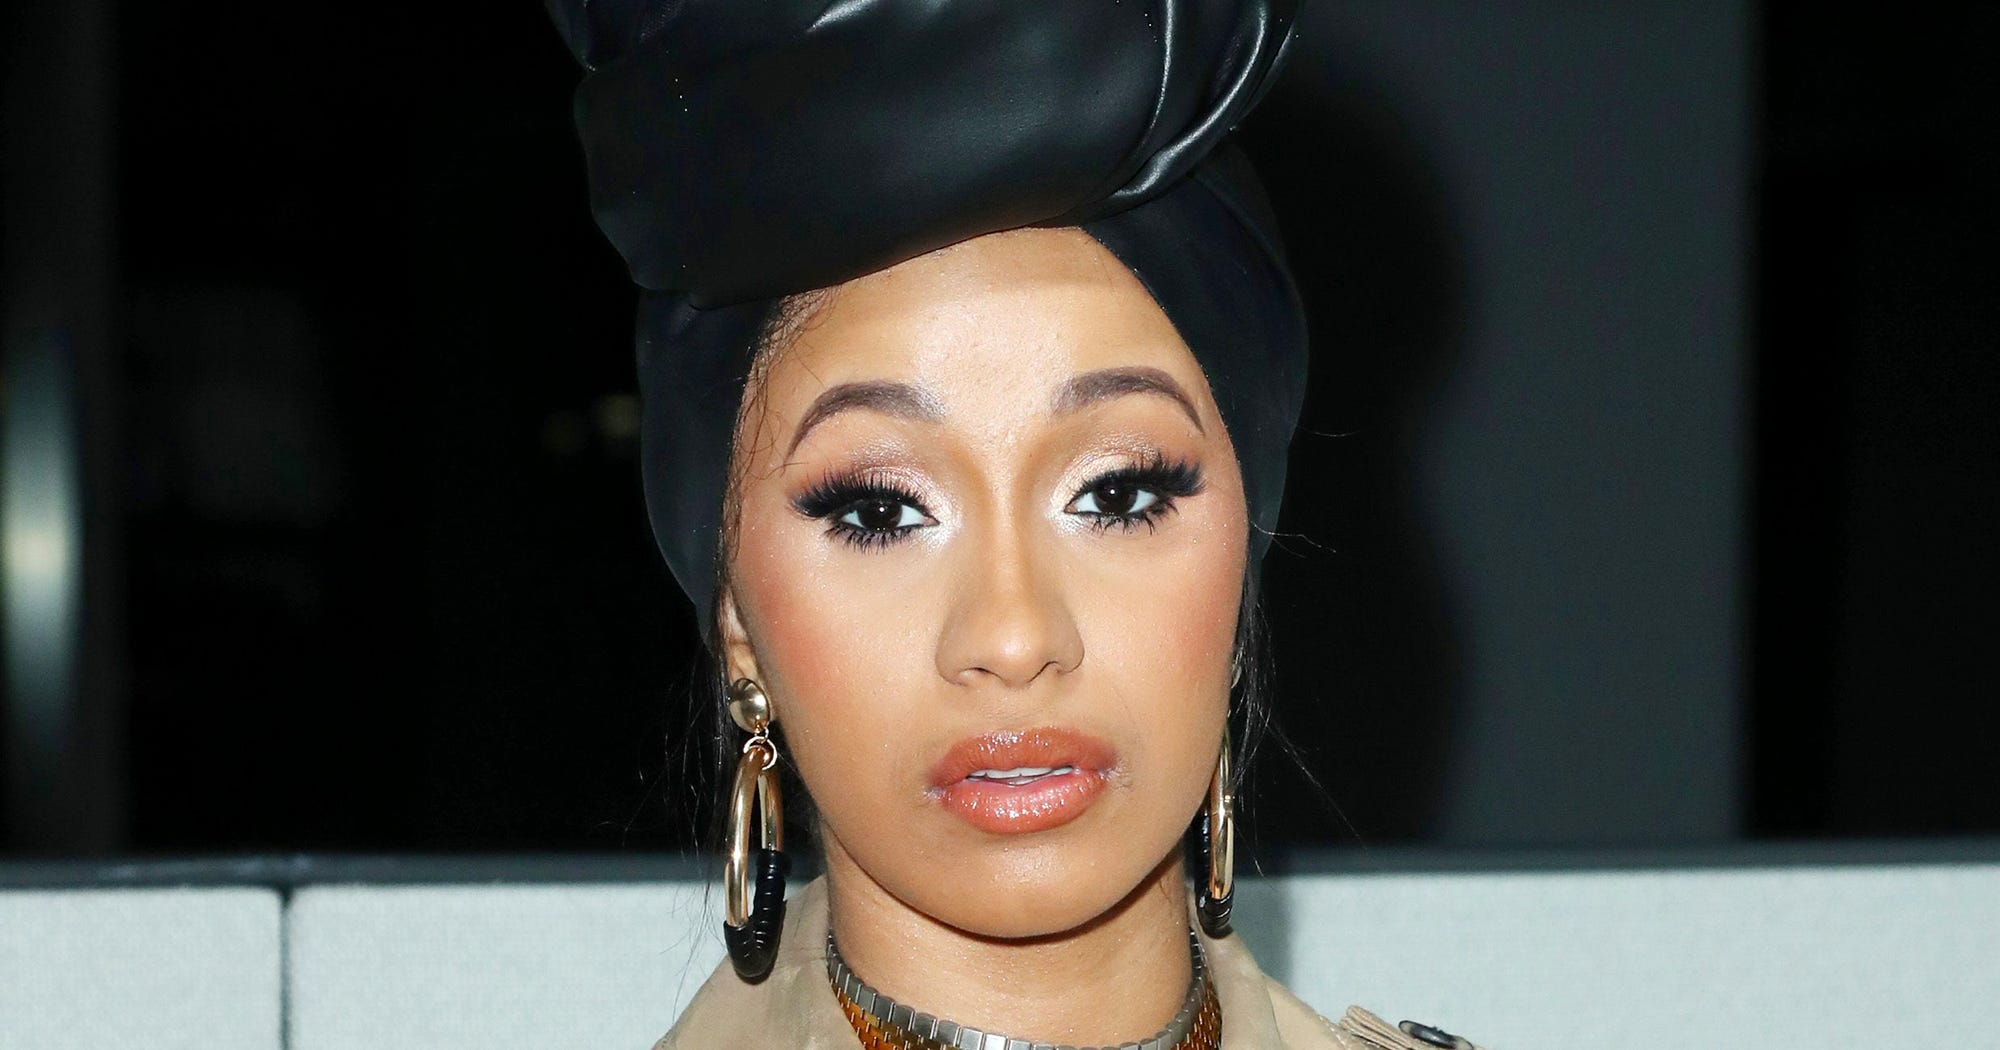 Cardi B Shares Fan Tattoo Of Her Lyrics We Gon Win: Cardi B Inspired Tattoos Are Trending Among Fans